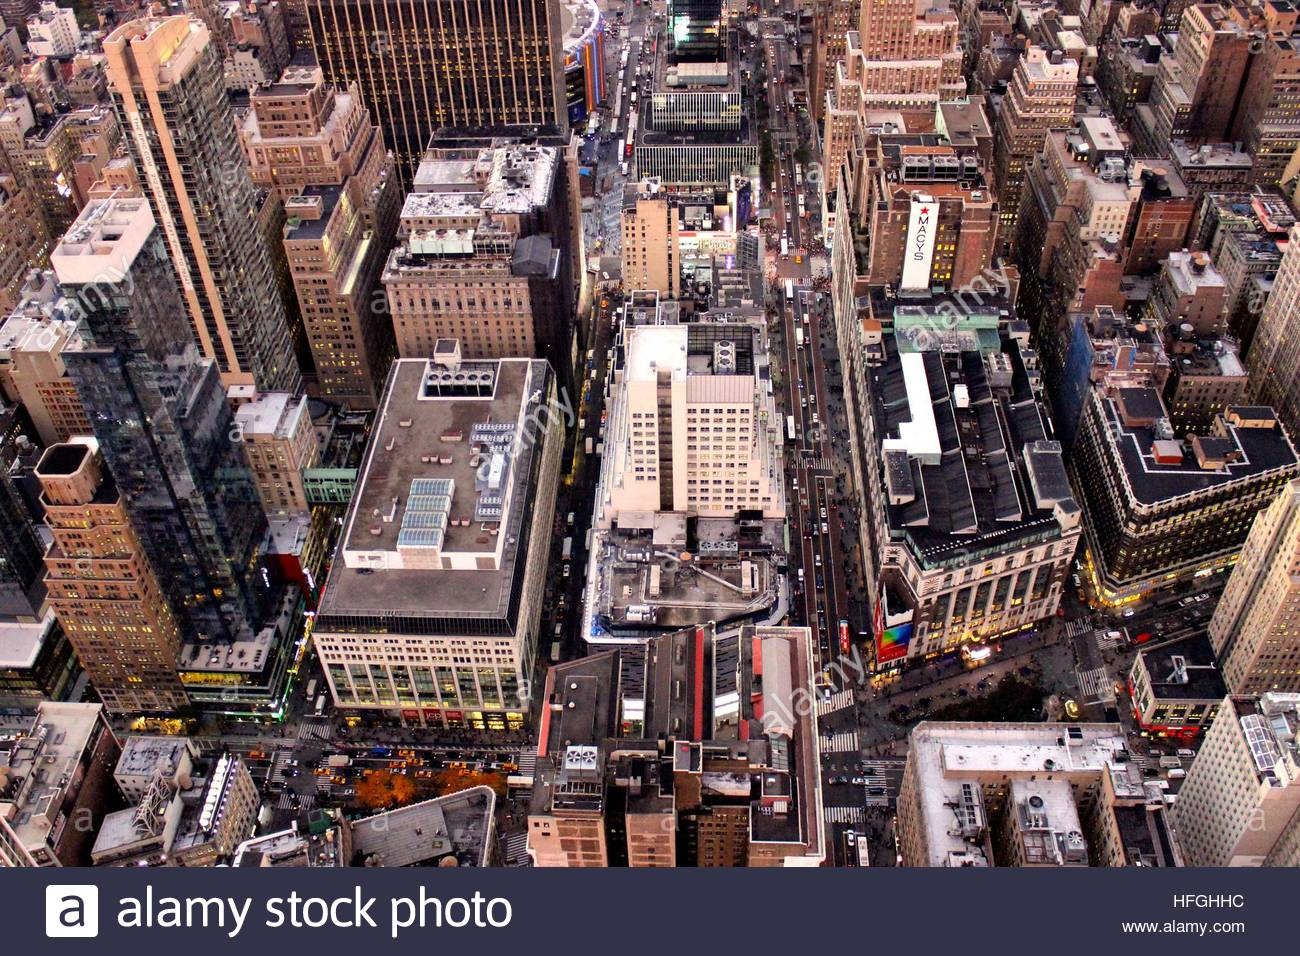 Sky view of buildings in New York City, New York - Stock Image